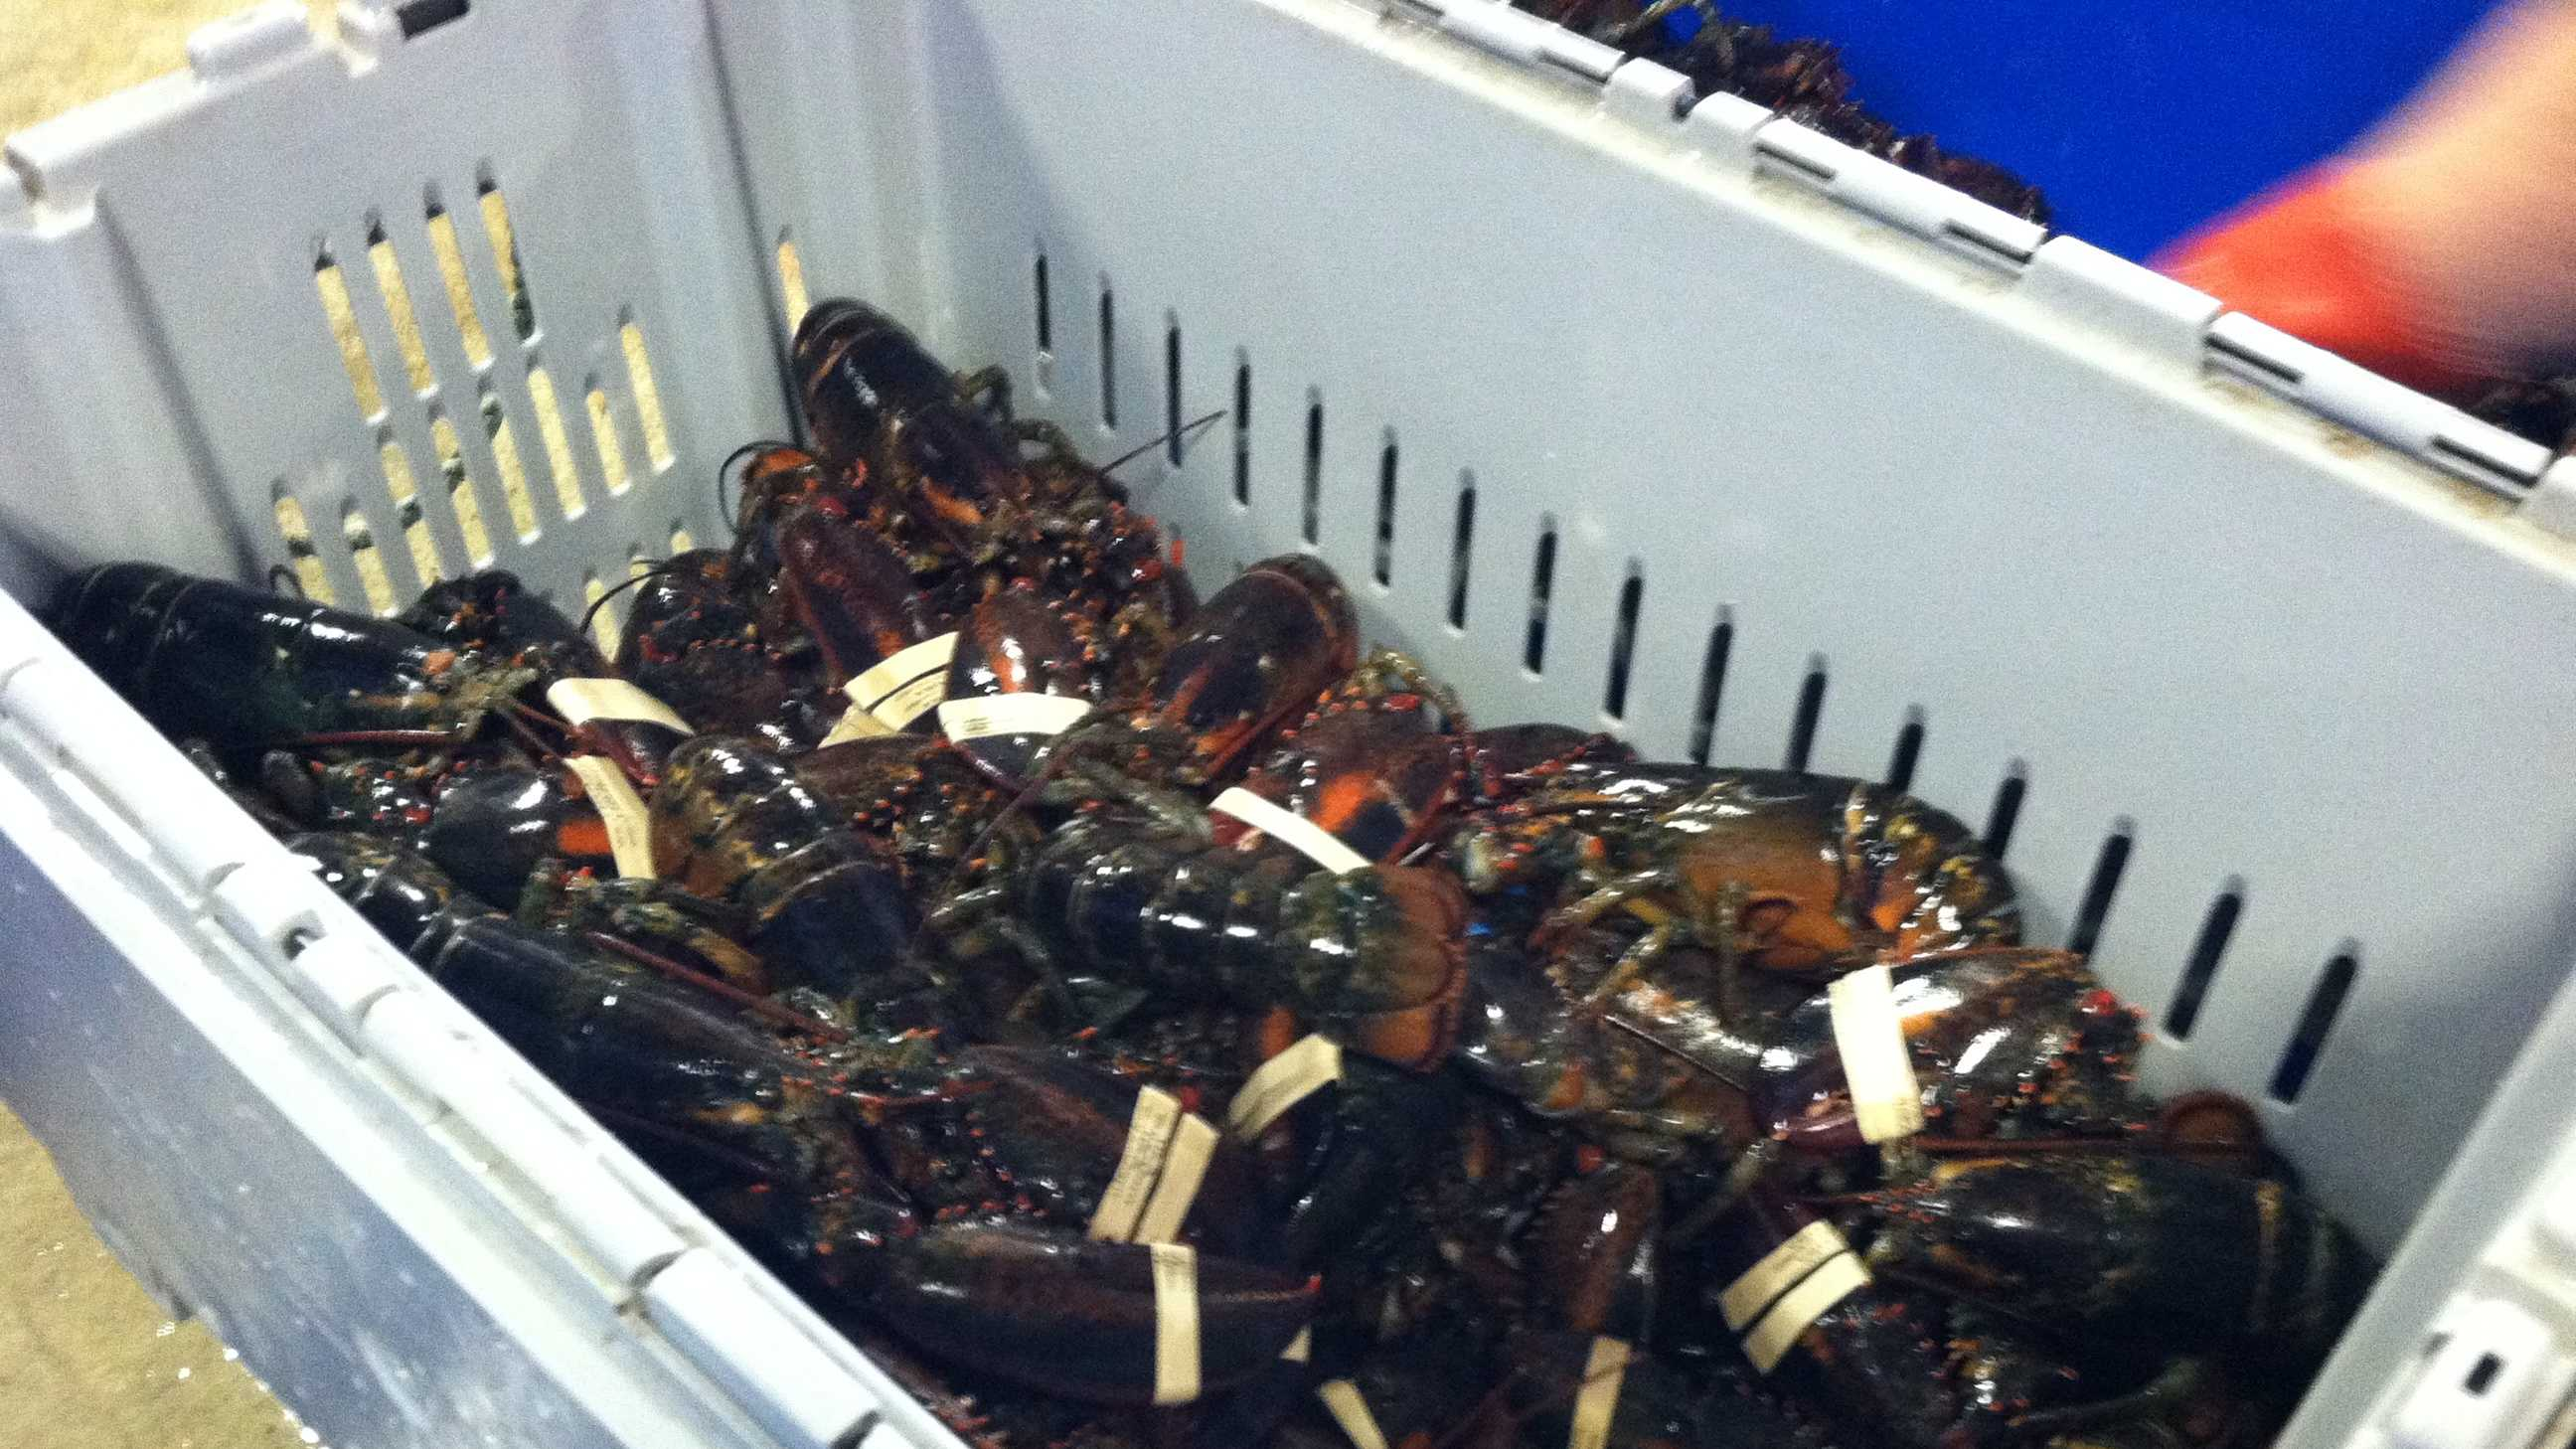 A glut in the catch combined with an abundance of soft shell lobster force prices to go down. Maine lobstermen struggle to make a profit and angry Canadian lobstemen block shipments of Maine lobsters in New Brunswick.